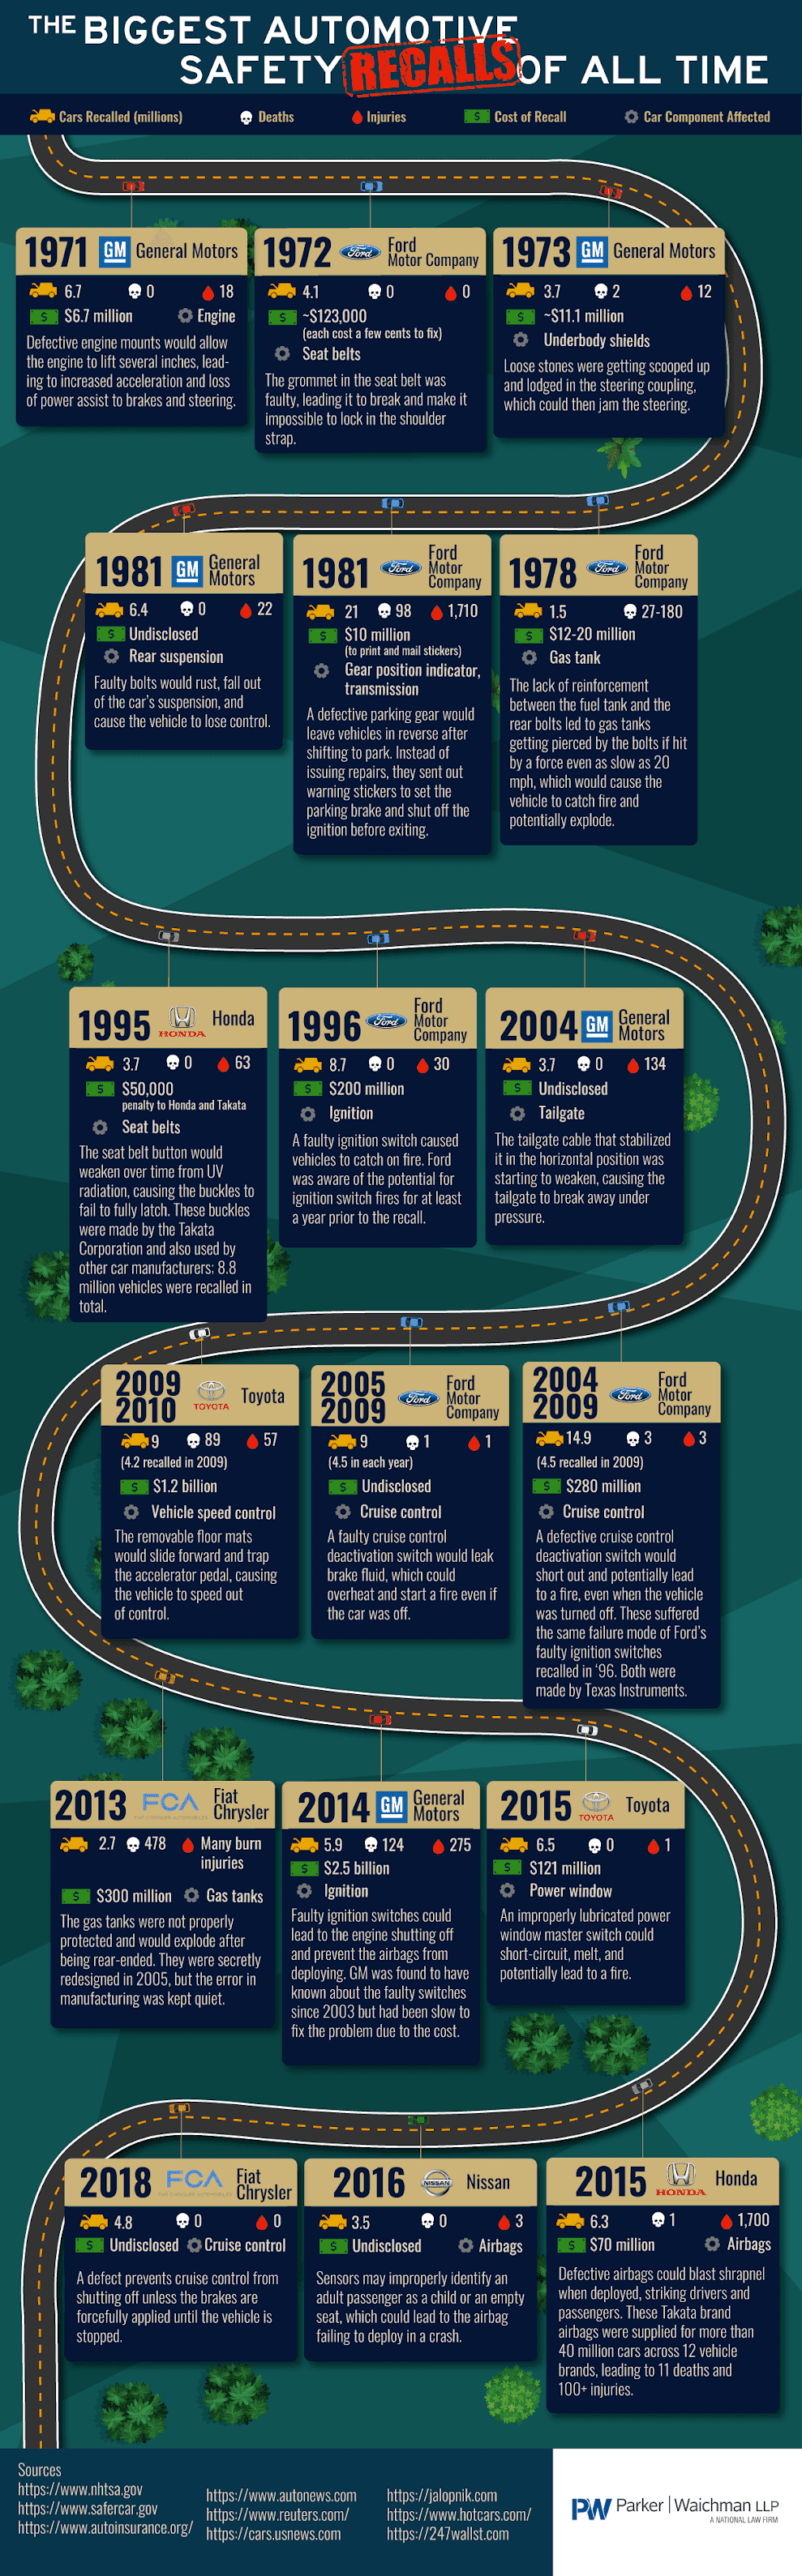 The Biggest Automotive Safety Recalls of All Time #infographic